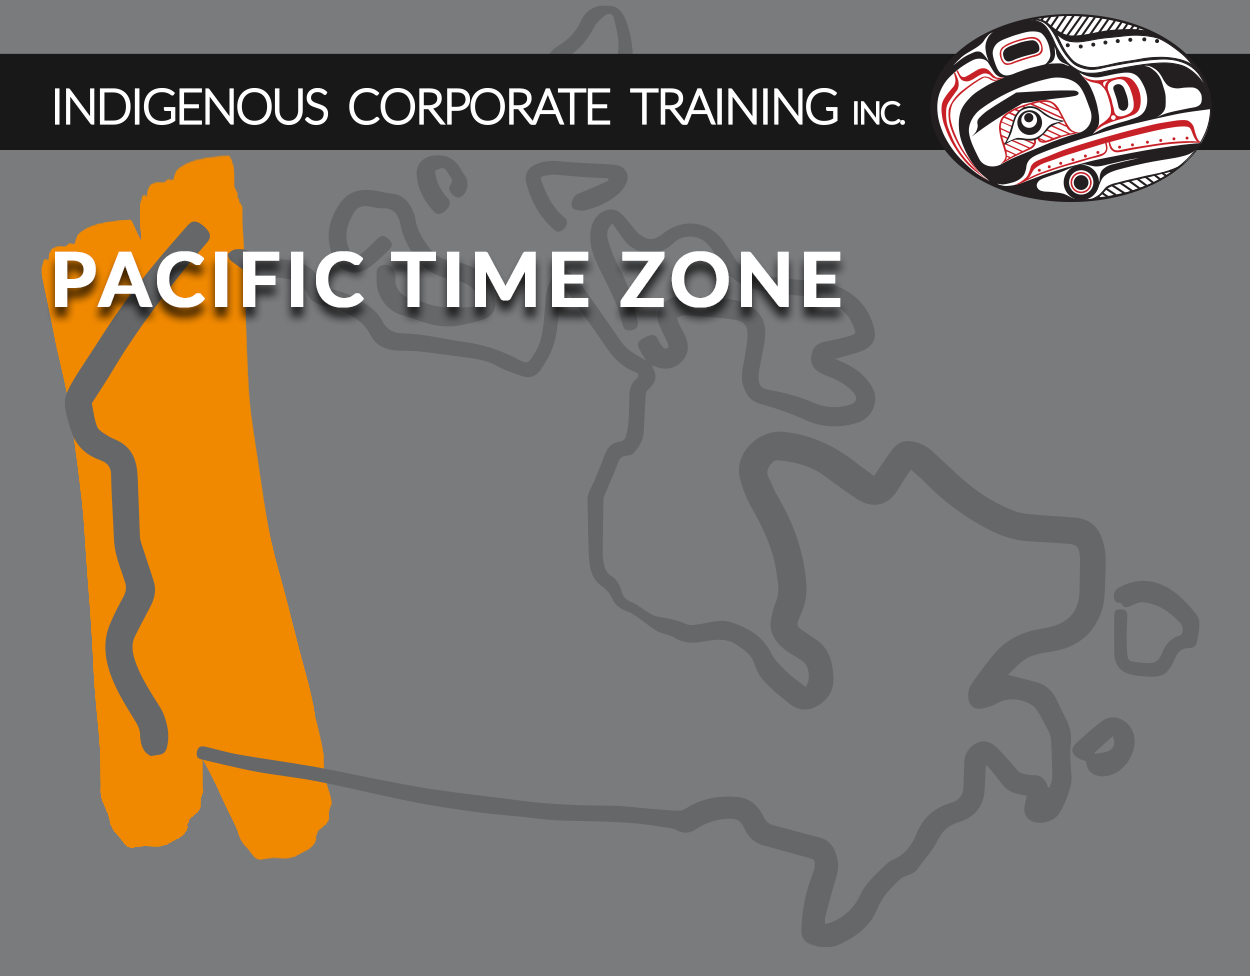 Virtual Classroom - Pacific Time Zone